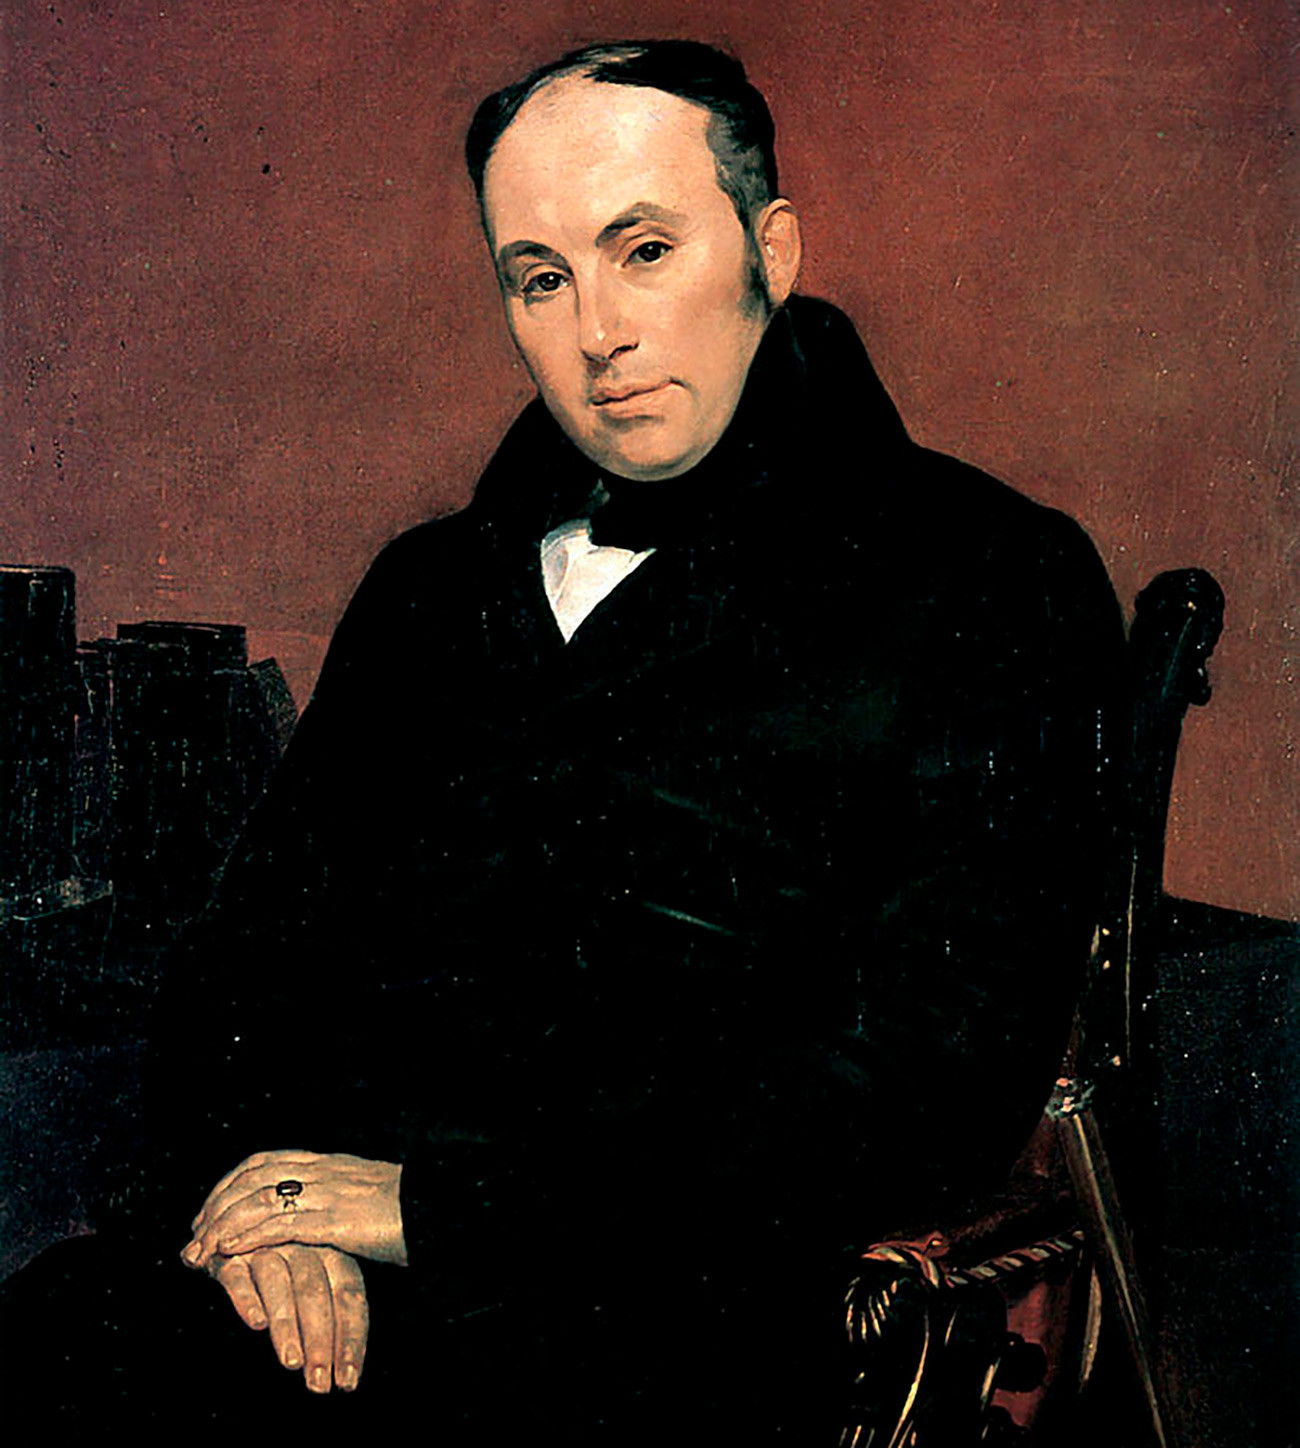 Portrait of Vasily Zhukovsky, who was the first to use the term intelligentsia in its contemporary meaning.